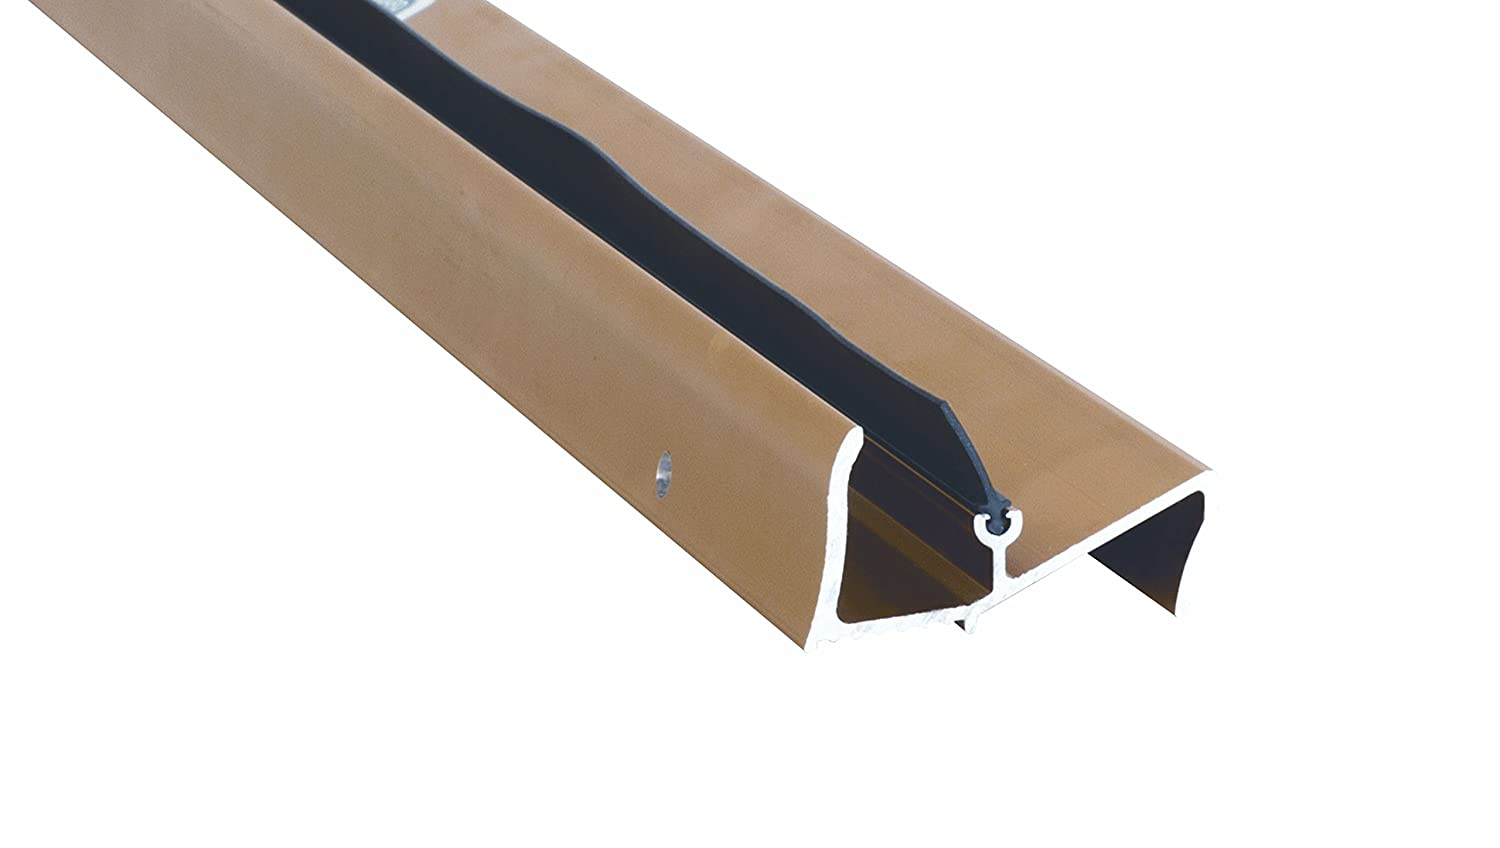 Stormguard 12SR0120838G 838mm Lowline Threshold Sill Kit including Rain Deflector - Gold